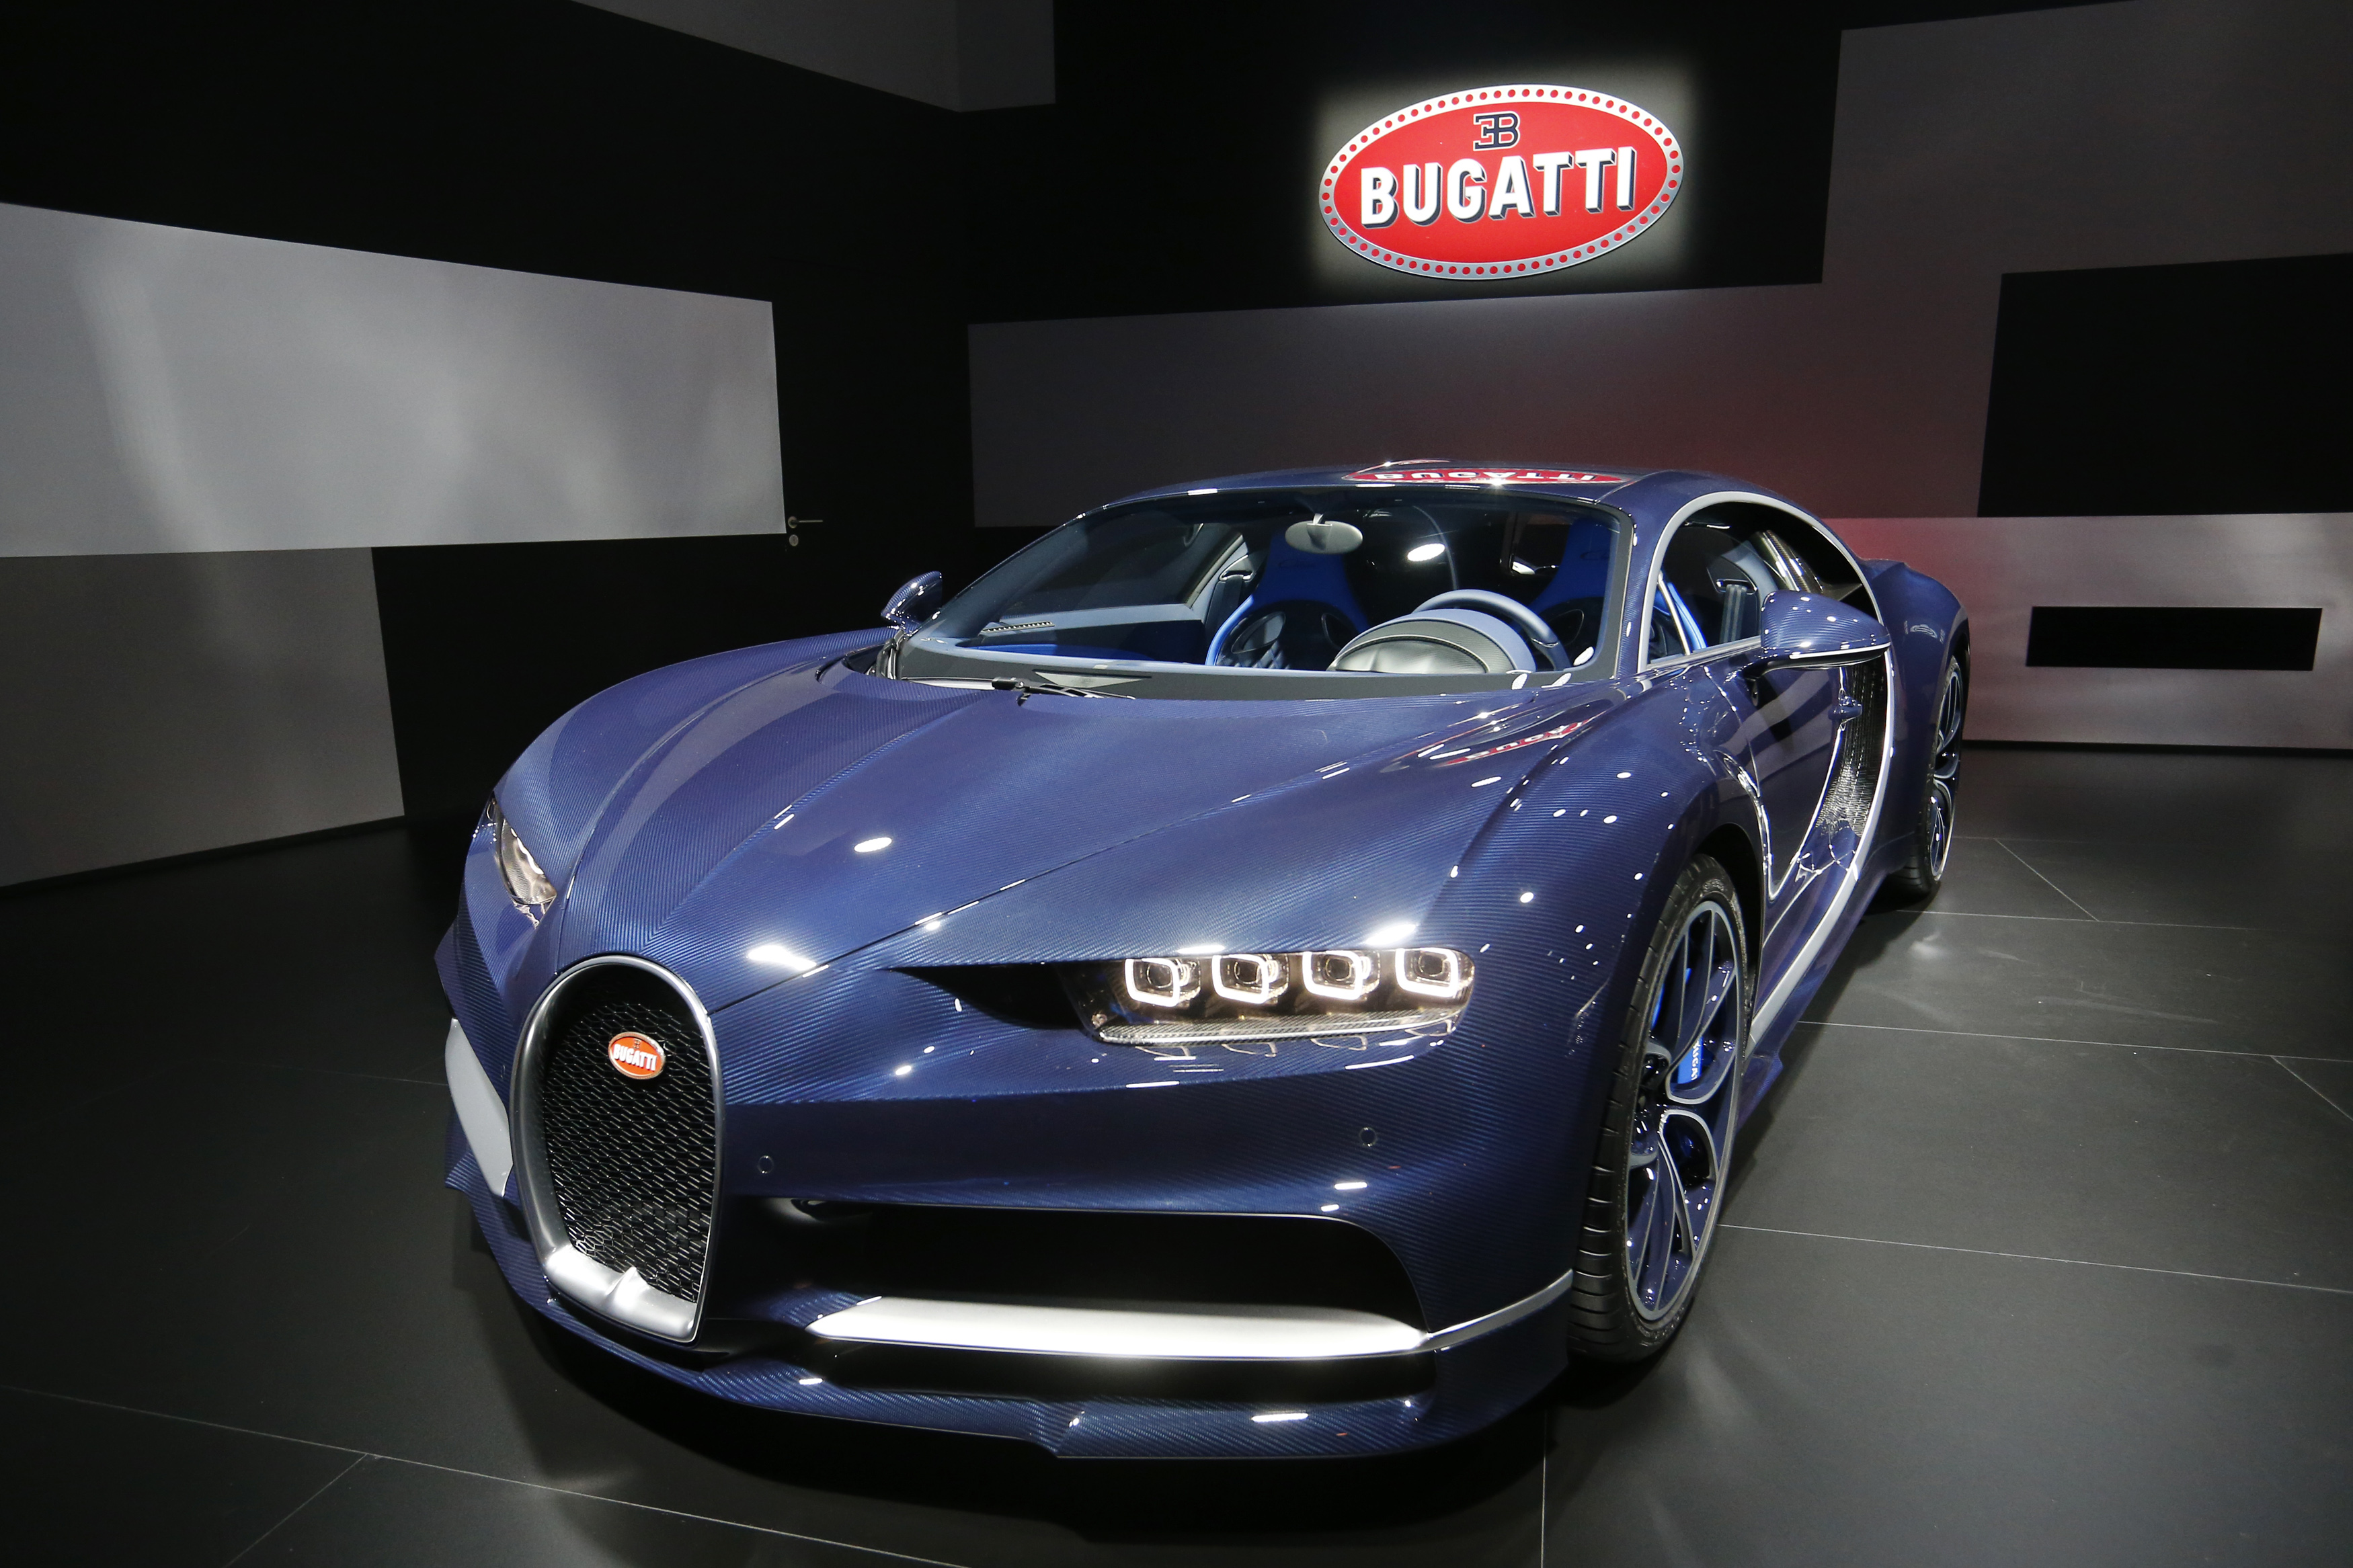 Bugatti Chiron car is seen during the 87th International Motor Show at Palexpo in Geneva